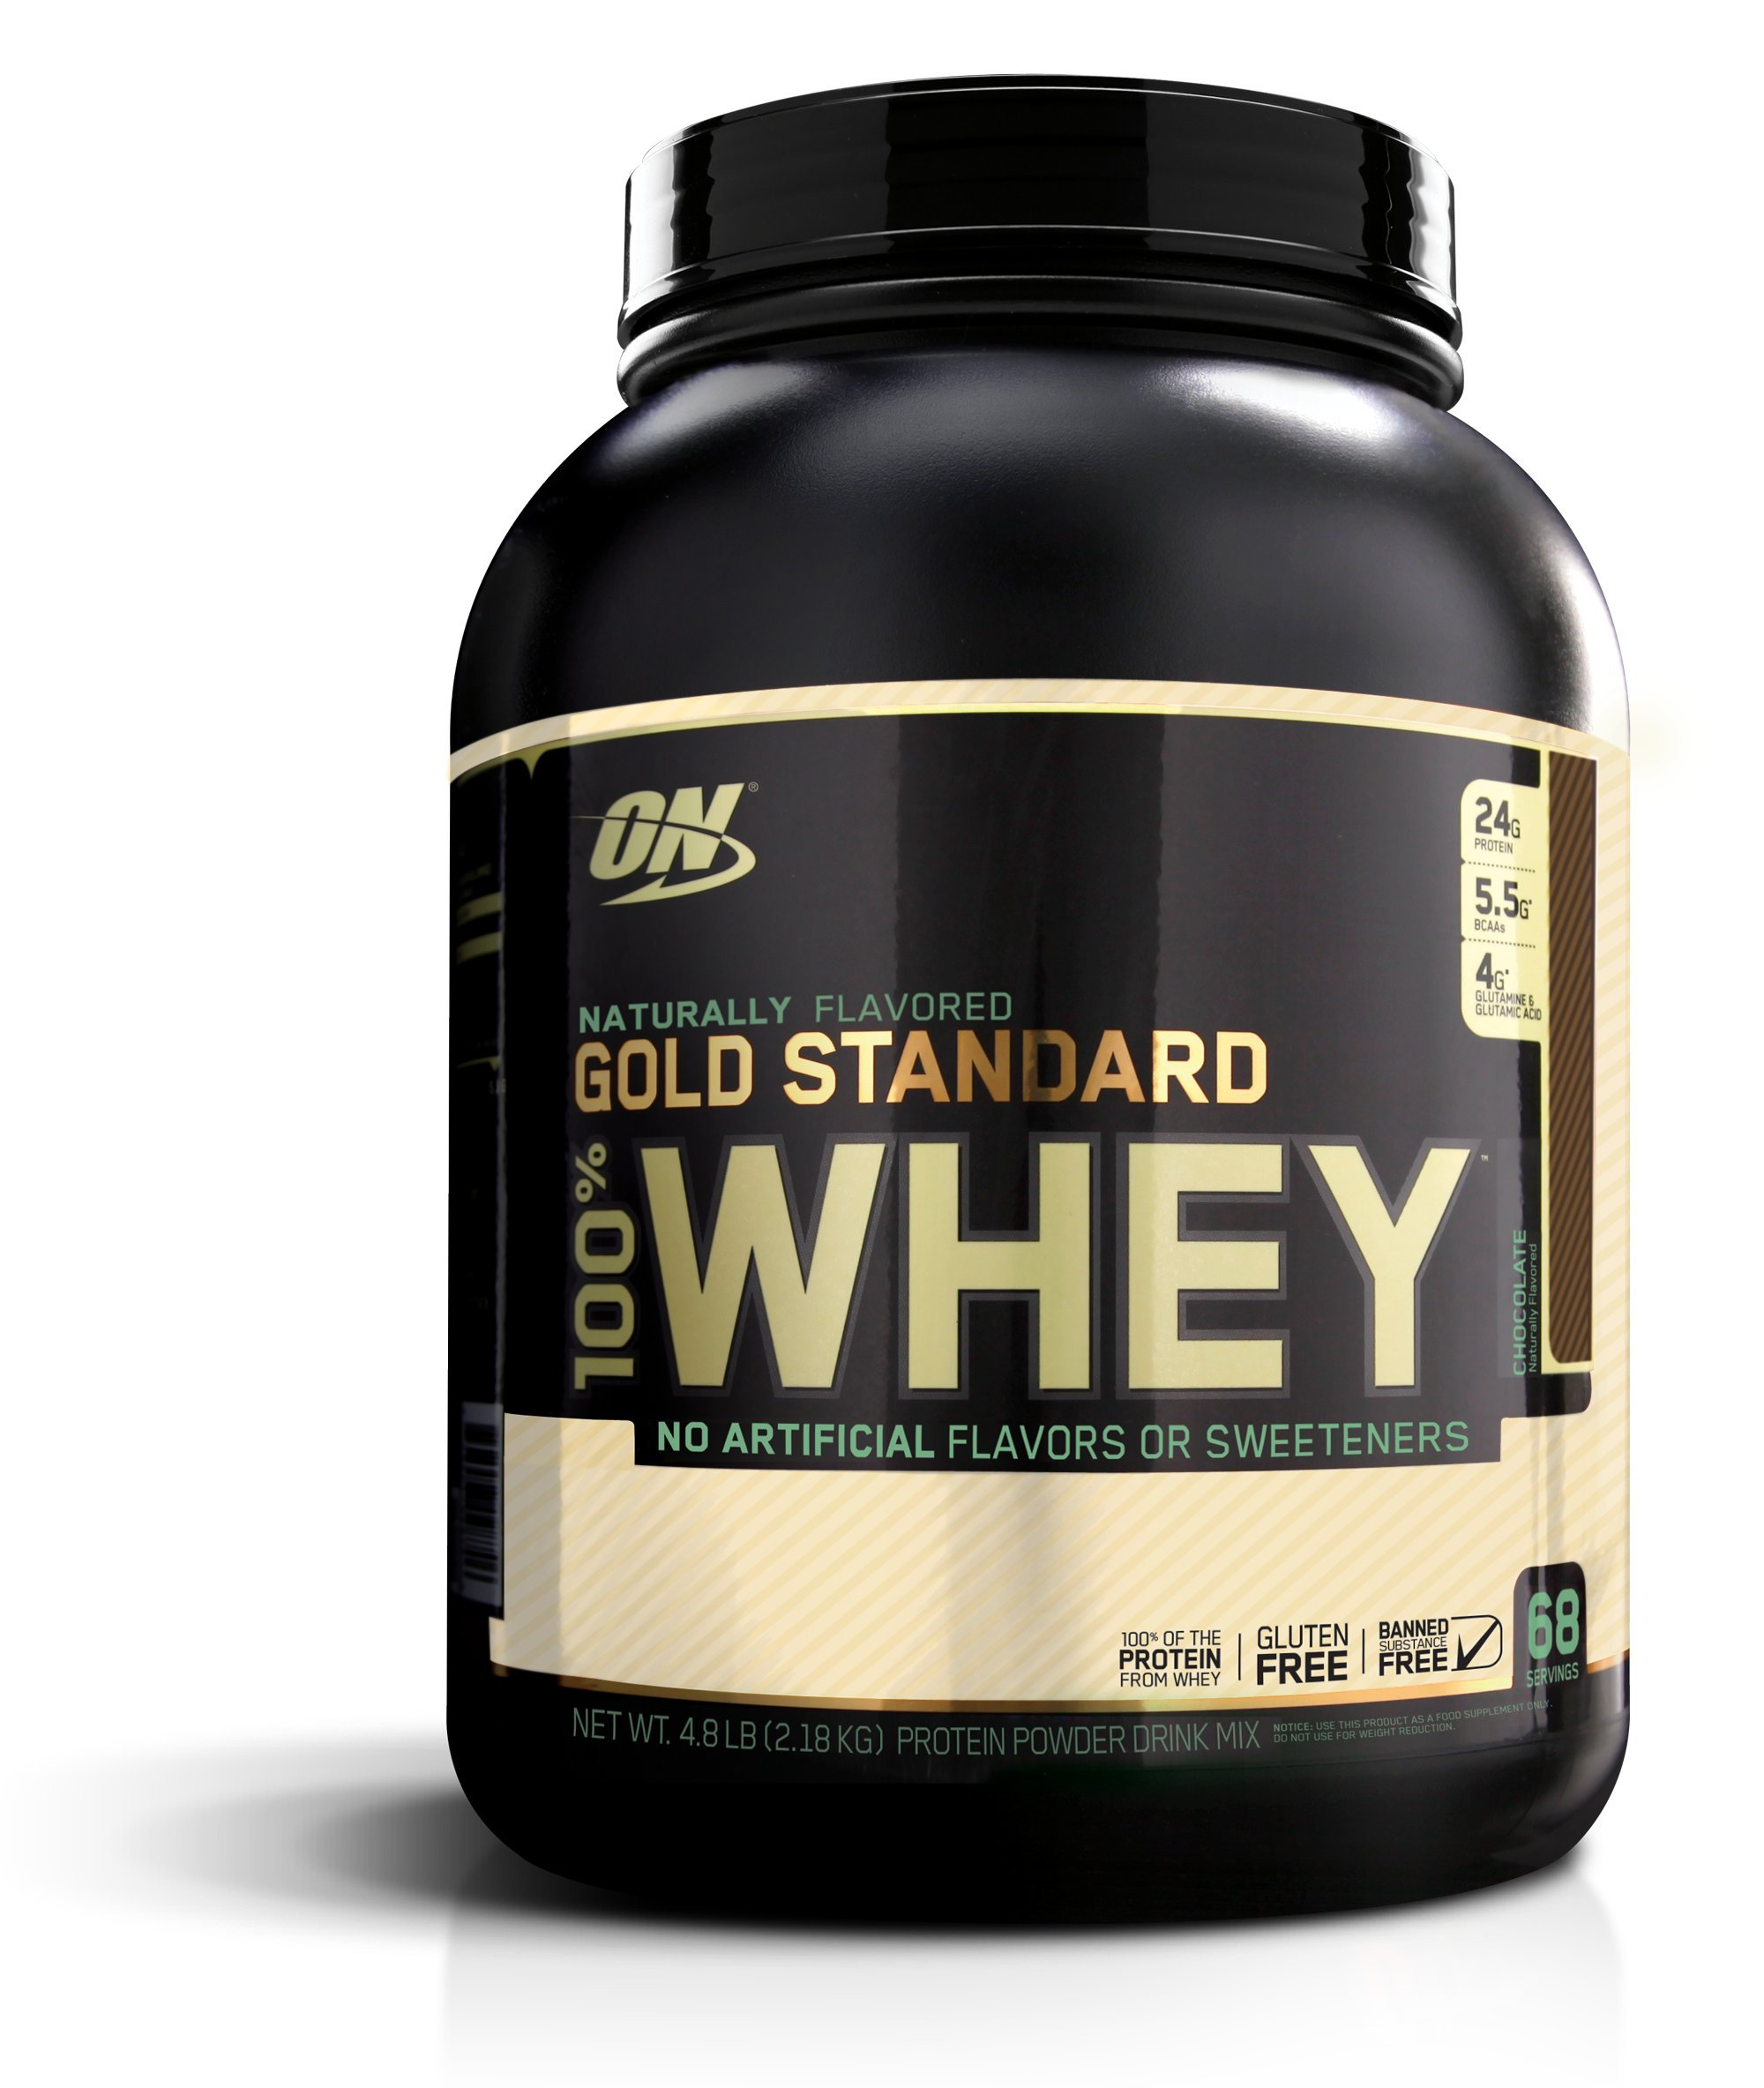 OPTIMUM NUTRITION GOLD STANDARD 100% Whey Protein Powder, Naturally Flavored Chocolate, 4.8 Pound by Optimum Nutrition